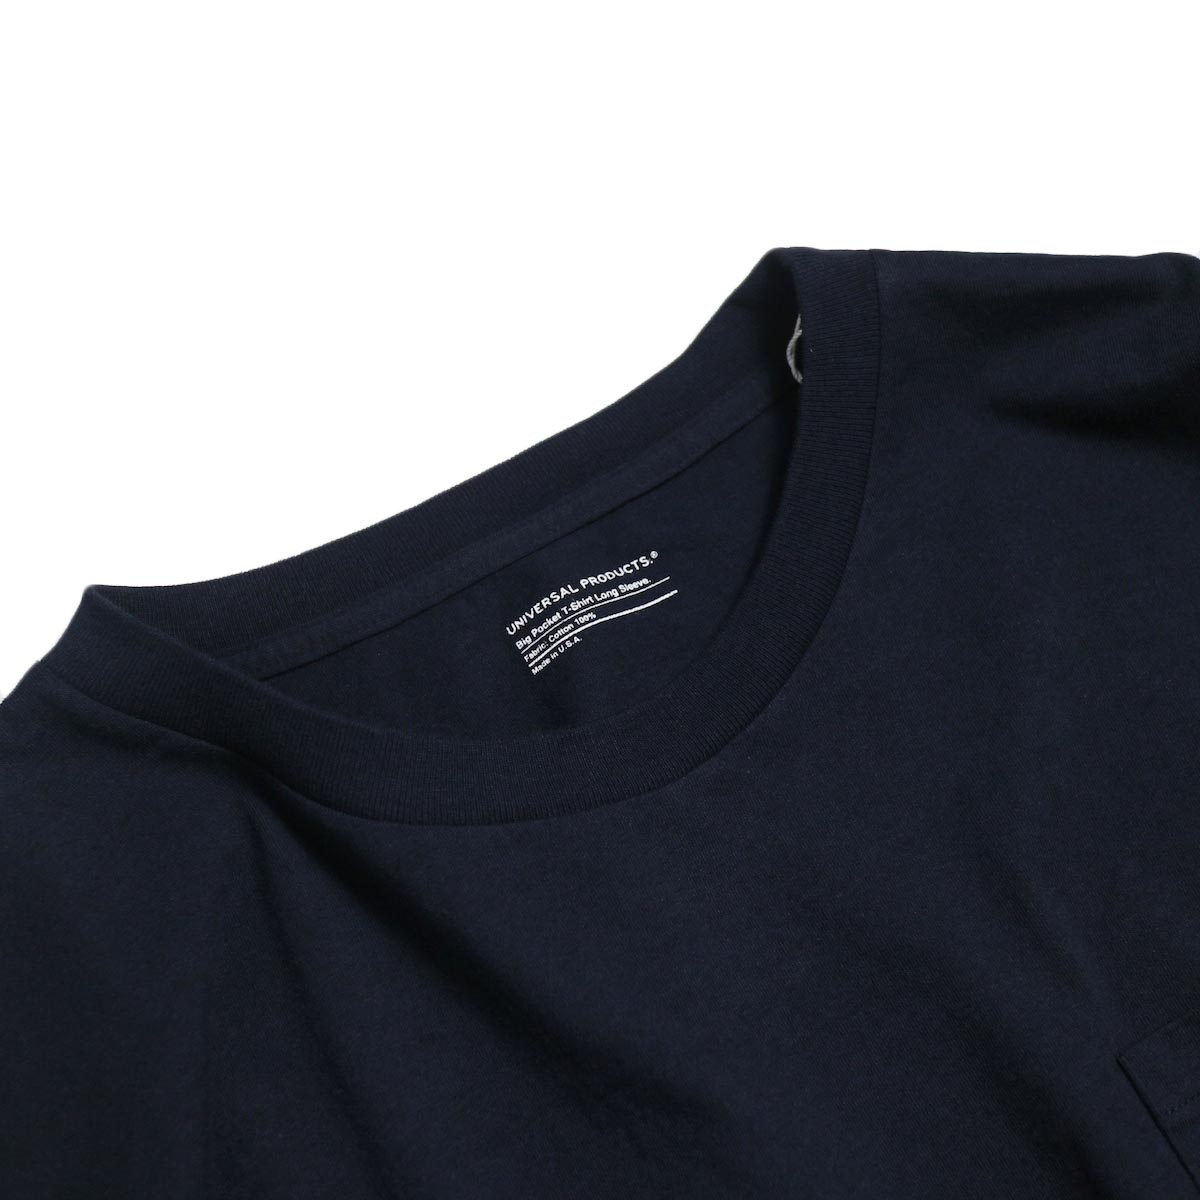 UNIVERSAL PRODUCTS / Heavy Weight L/S T-Shirt -Navy 首回り